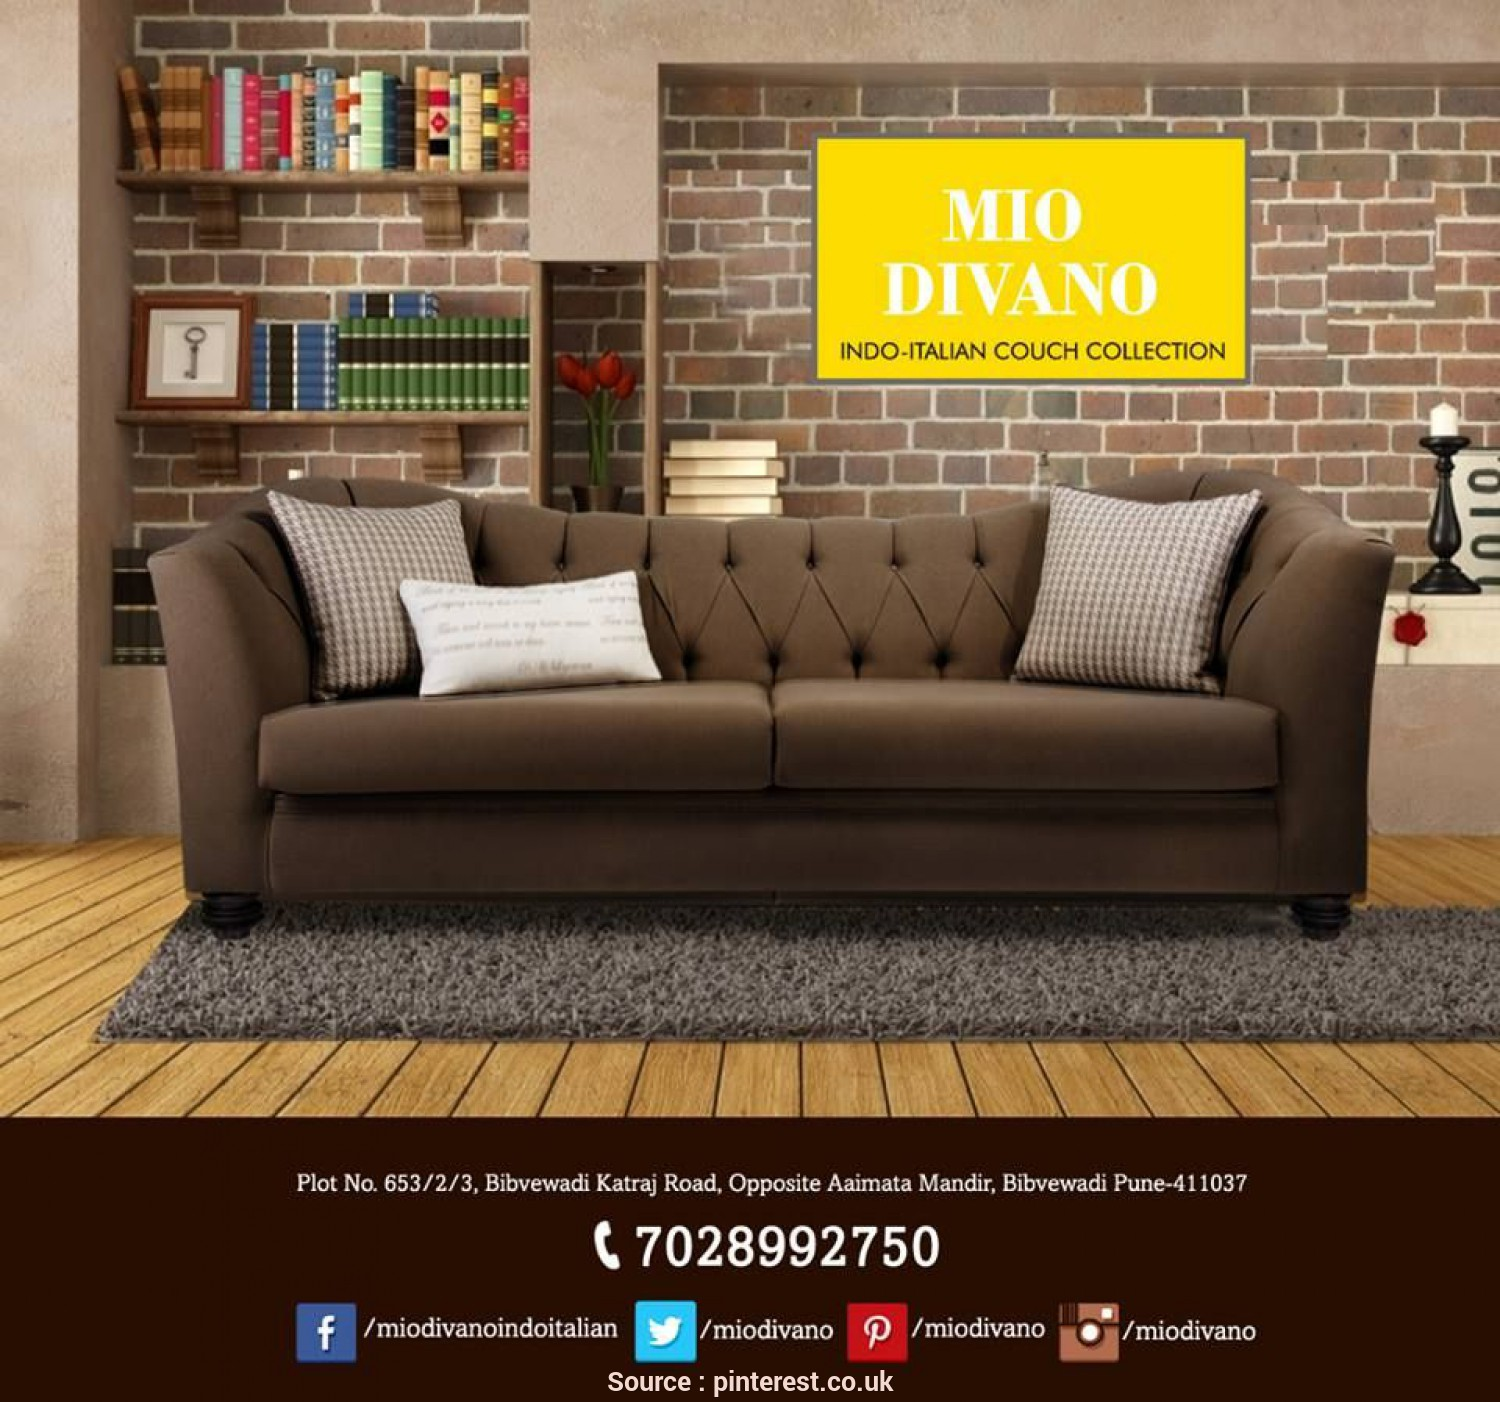 Divano Sofa Factory, Esclusivo Crafted #DesignerSofa At Unbelievable Price Only @, Divano Call Us Today At 7028992750 Sofa